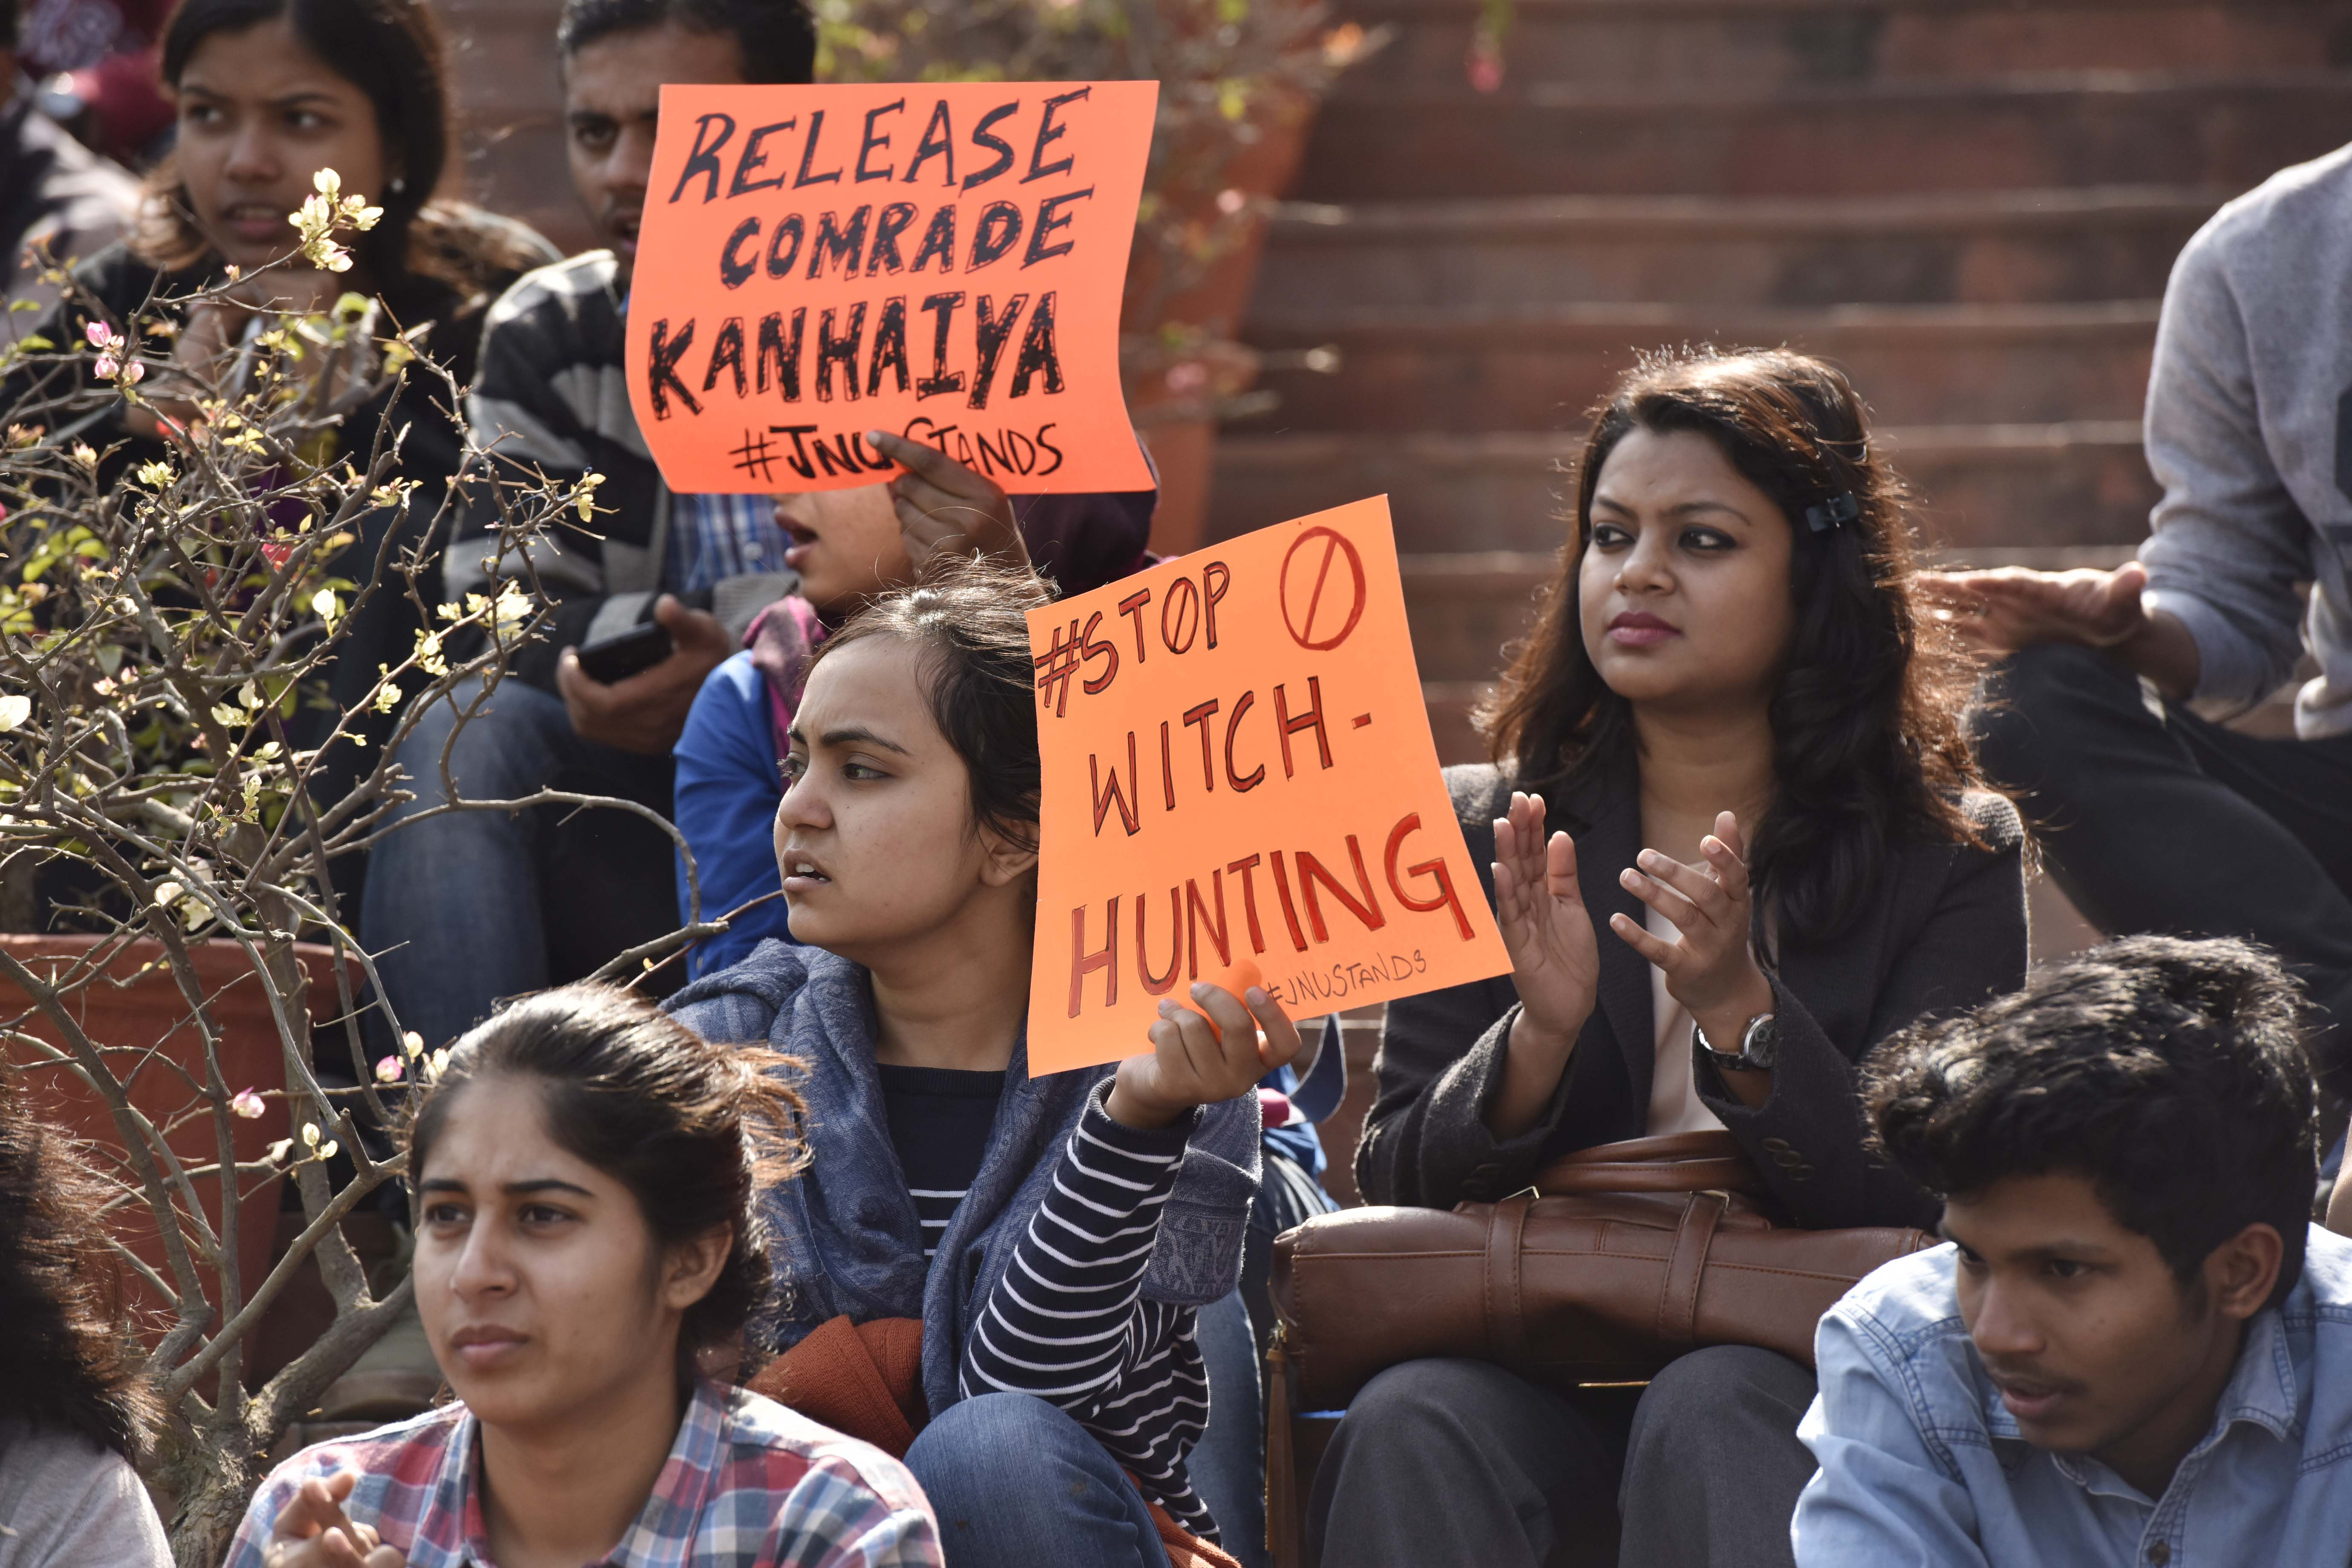 JNU students protest march against Central Government at JNU campus, demand the release of Kanhaiya Kumar on Feb. 16, 2016 in New Delhi, India.